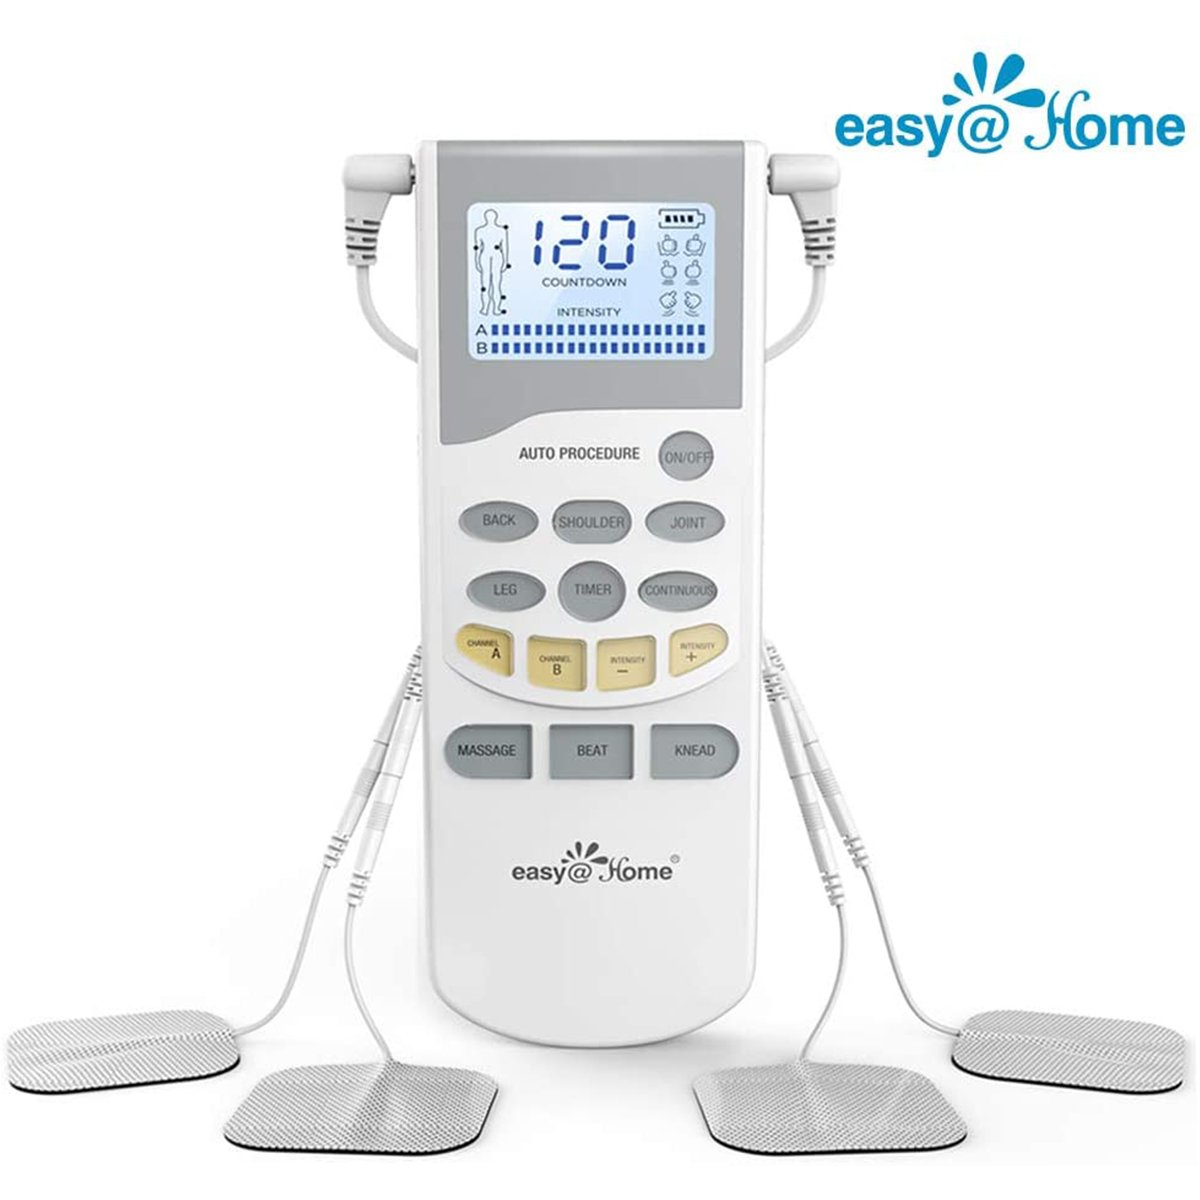 Easy@Home Professional Grade Rechargeable TENS Unit Electronic Pulse Massager